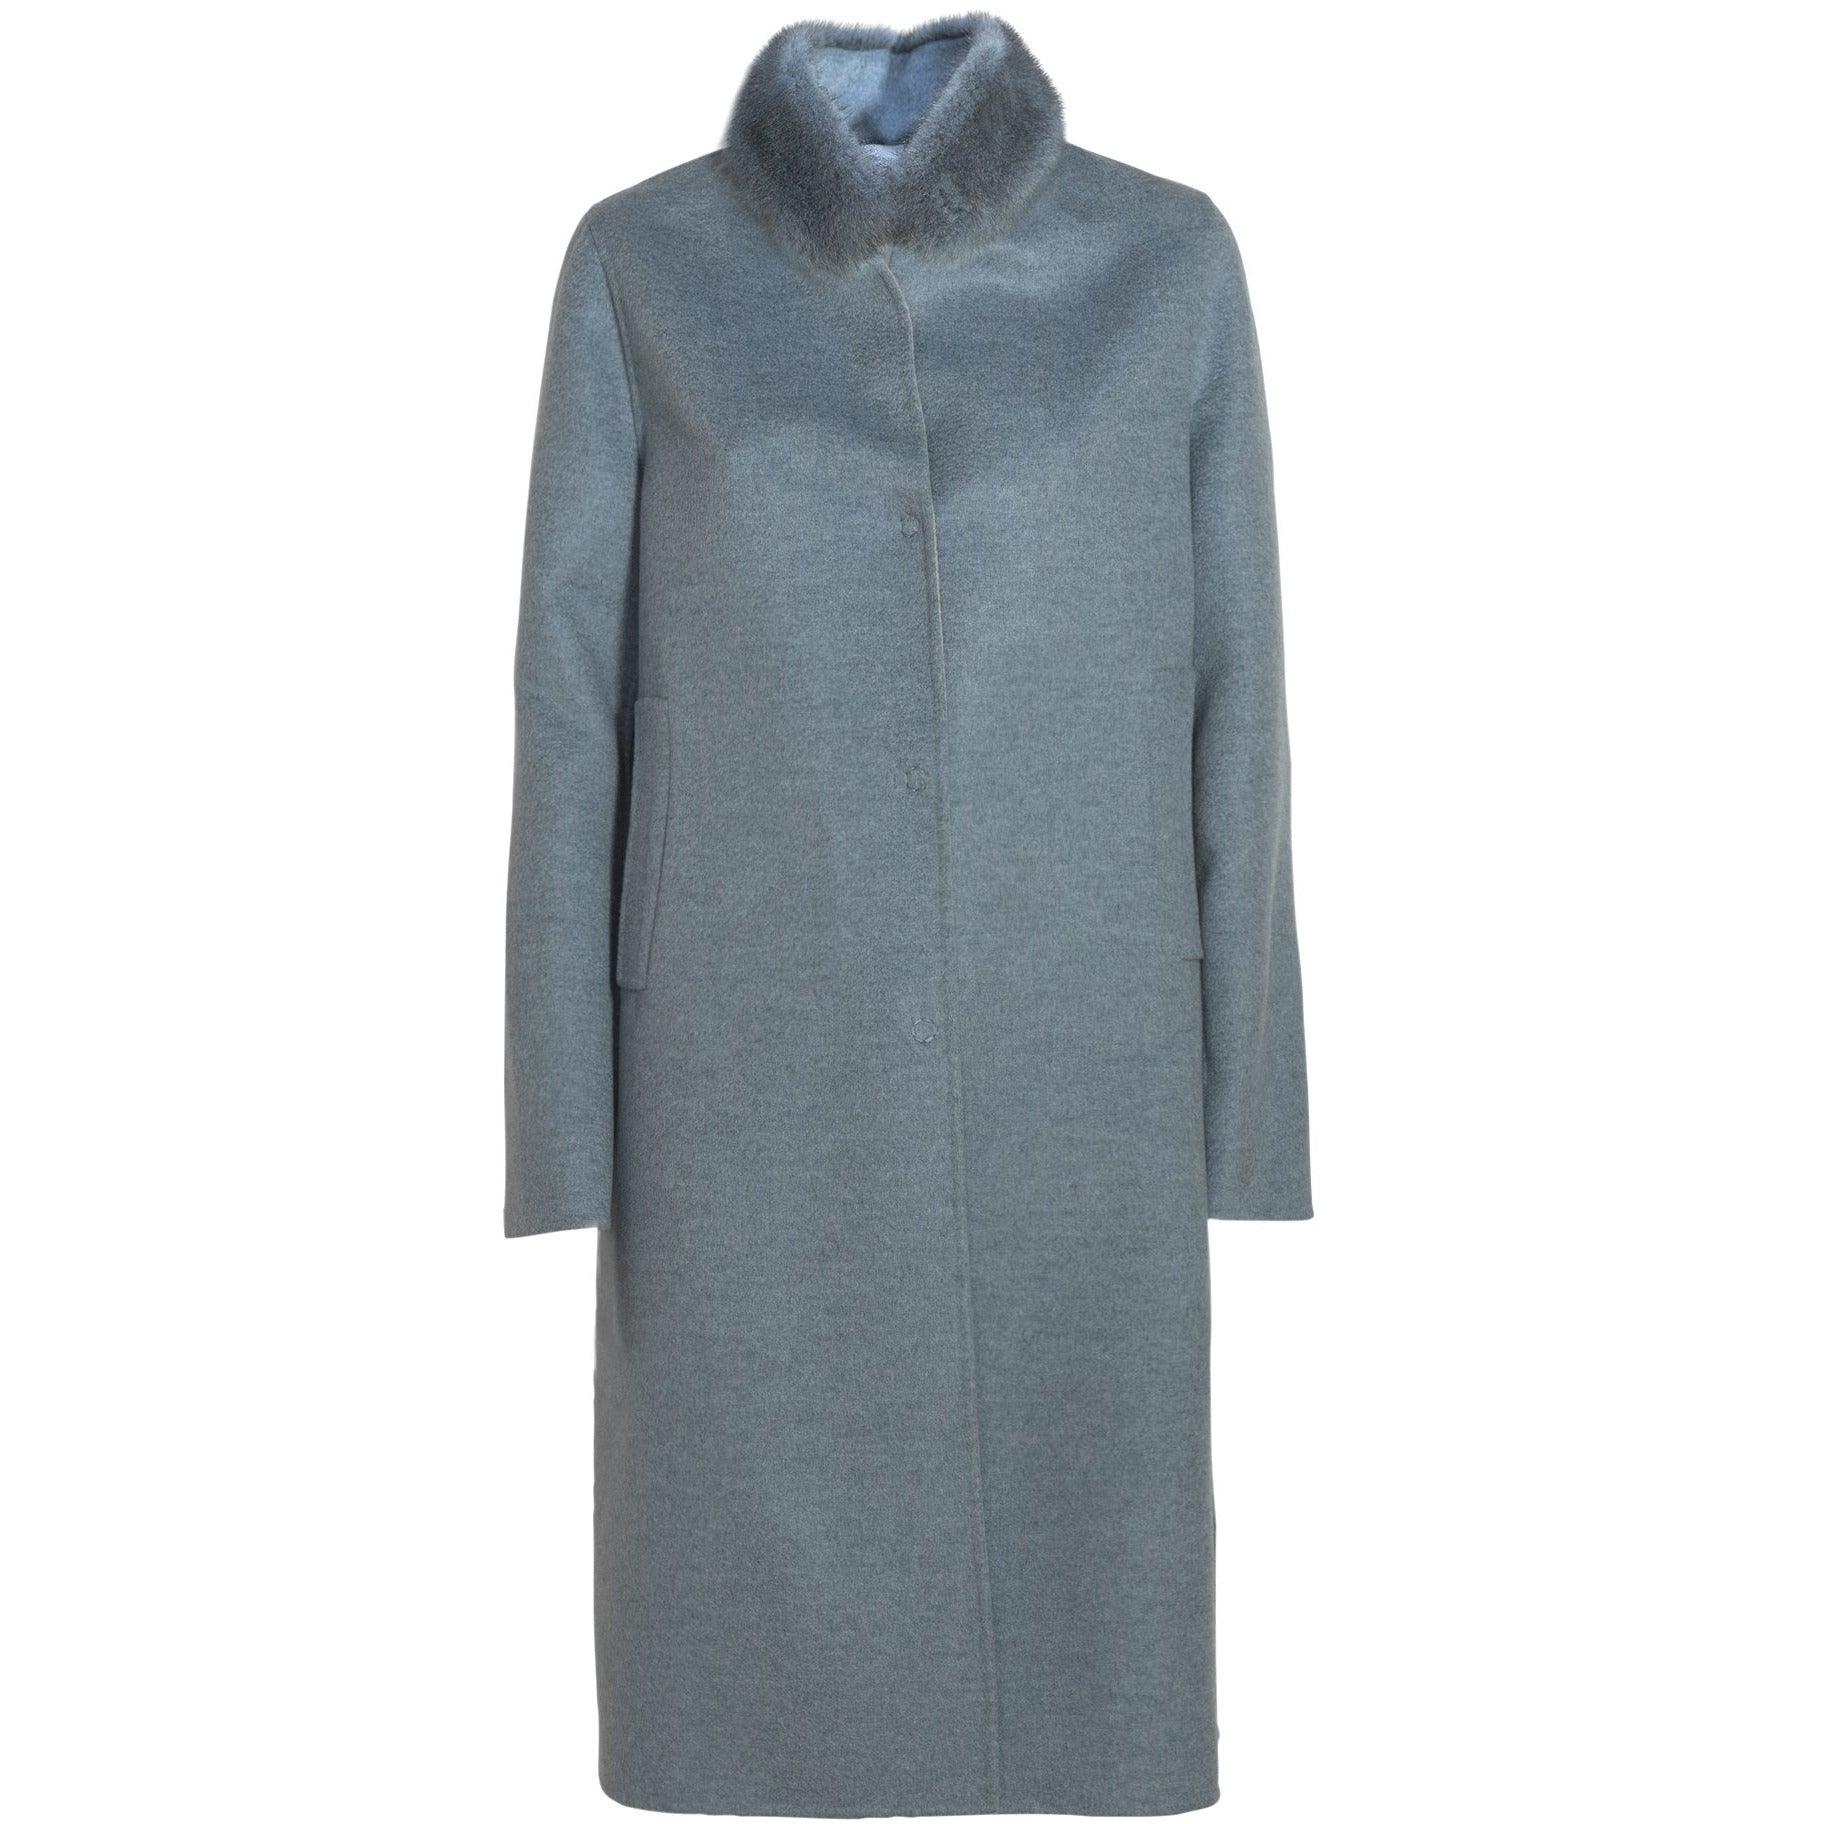 REVERSIBLE CASHMERE LONG COAT WITH MINK COLLAR - ROS1856 New 2020 Collection